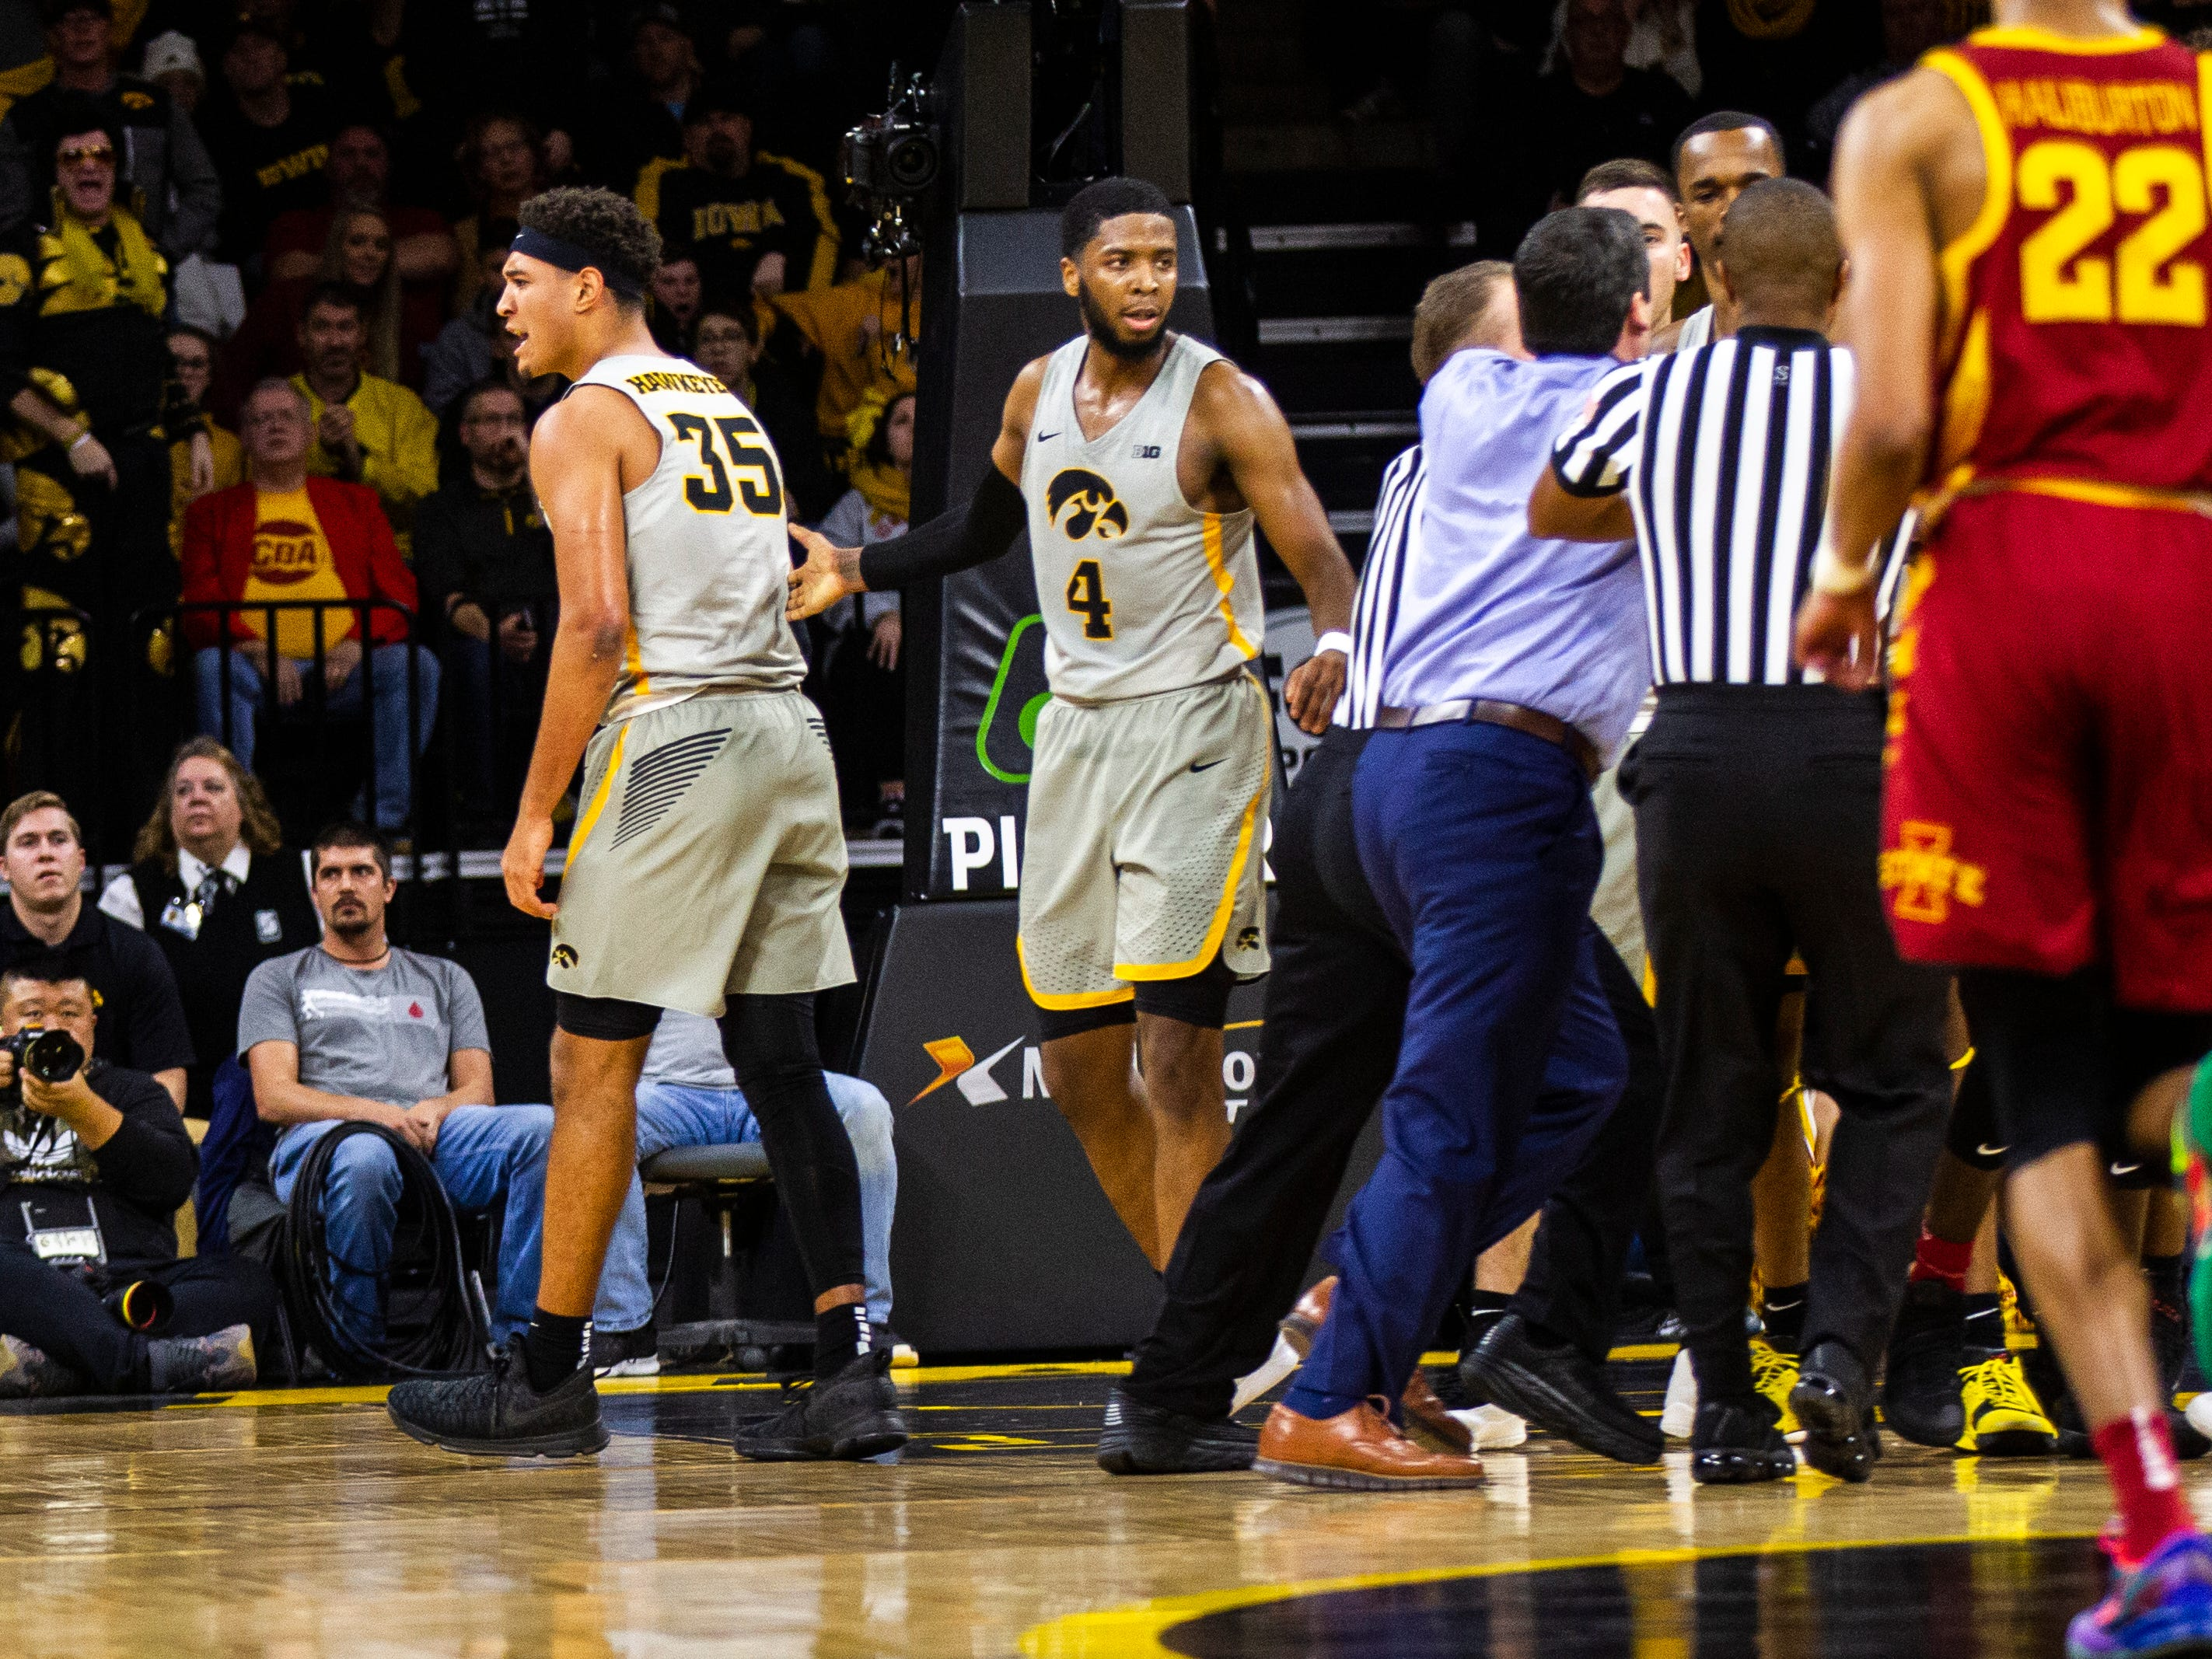 Iowa forward Cordell Pemsl (35) reacts while players get separated back to their benches while Iowa guard Isaiah Moss (4) looks on during a NCAA Cy-Hawk series men's basketball game on Thursday, Dec. 6, 2018, at Carver-Hawkeye Arena in Iowa City.